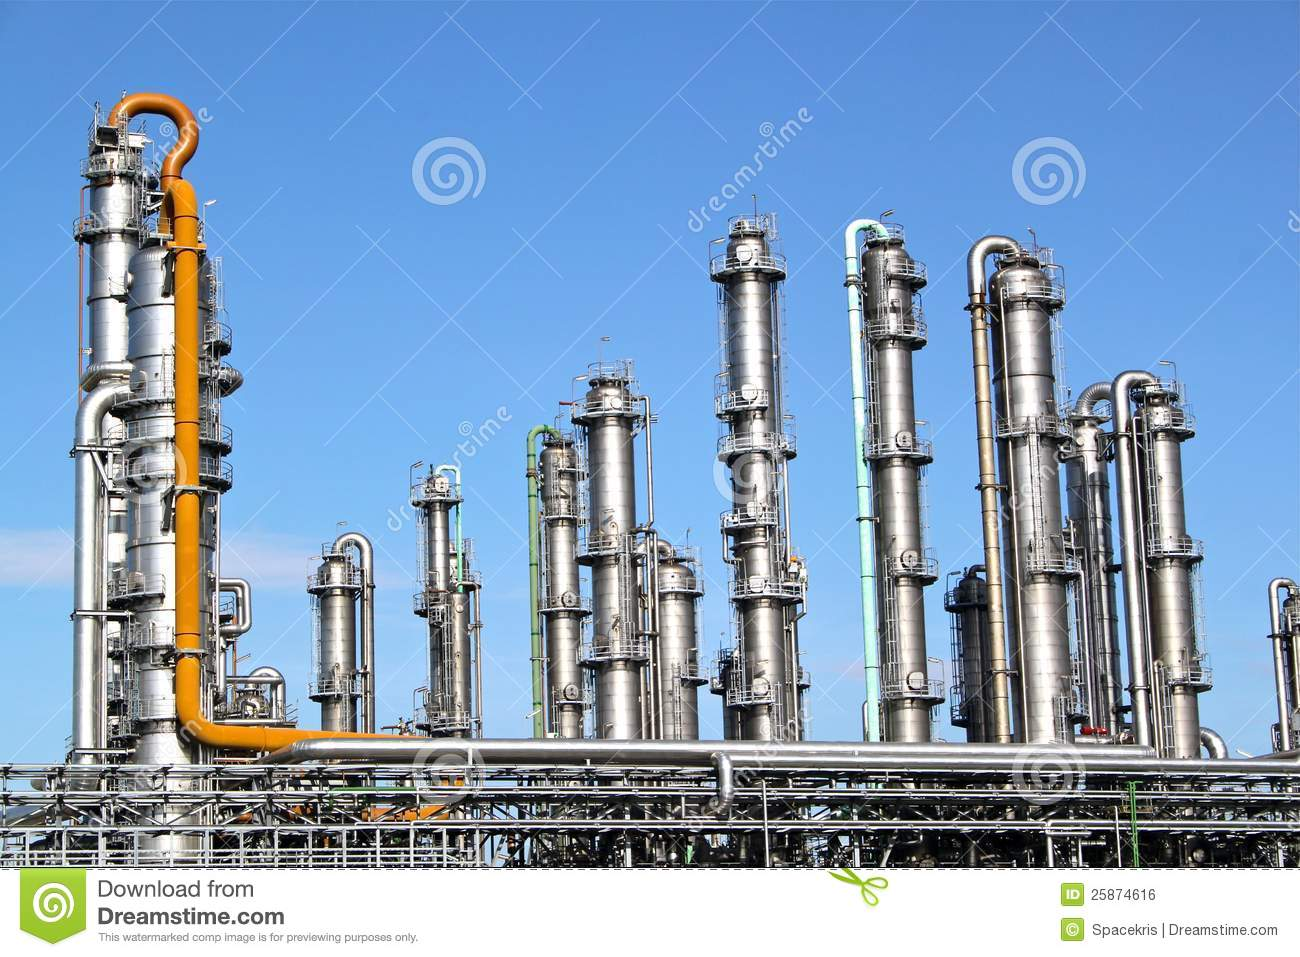 Distillation Towers Royalty Free Stock Image - Image: 25874616